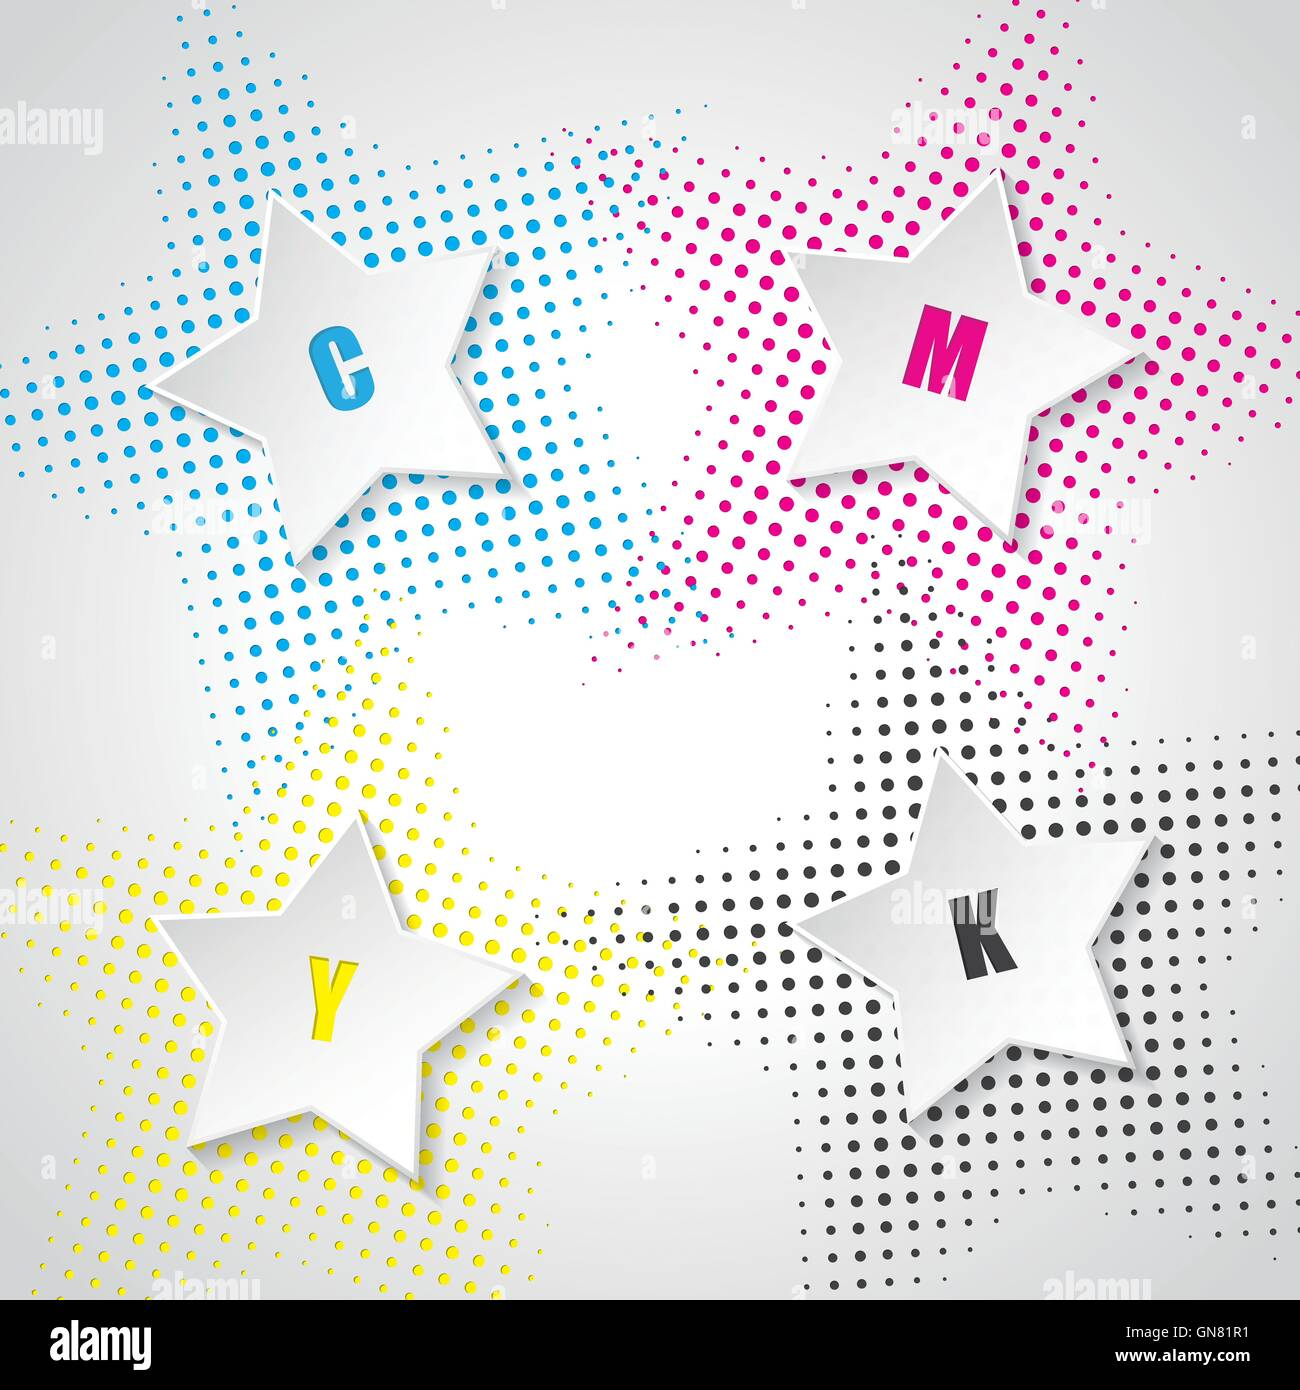 Abstract cmyk background with 3d stars - Stock Image